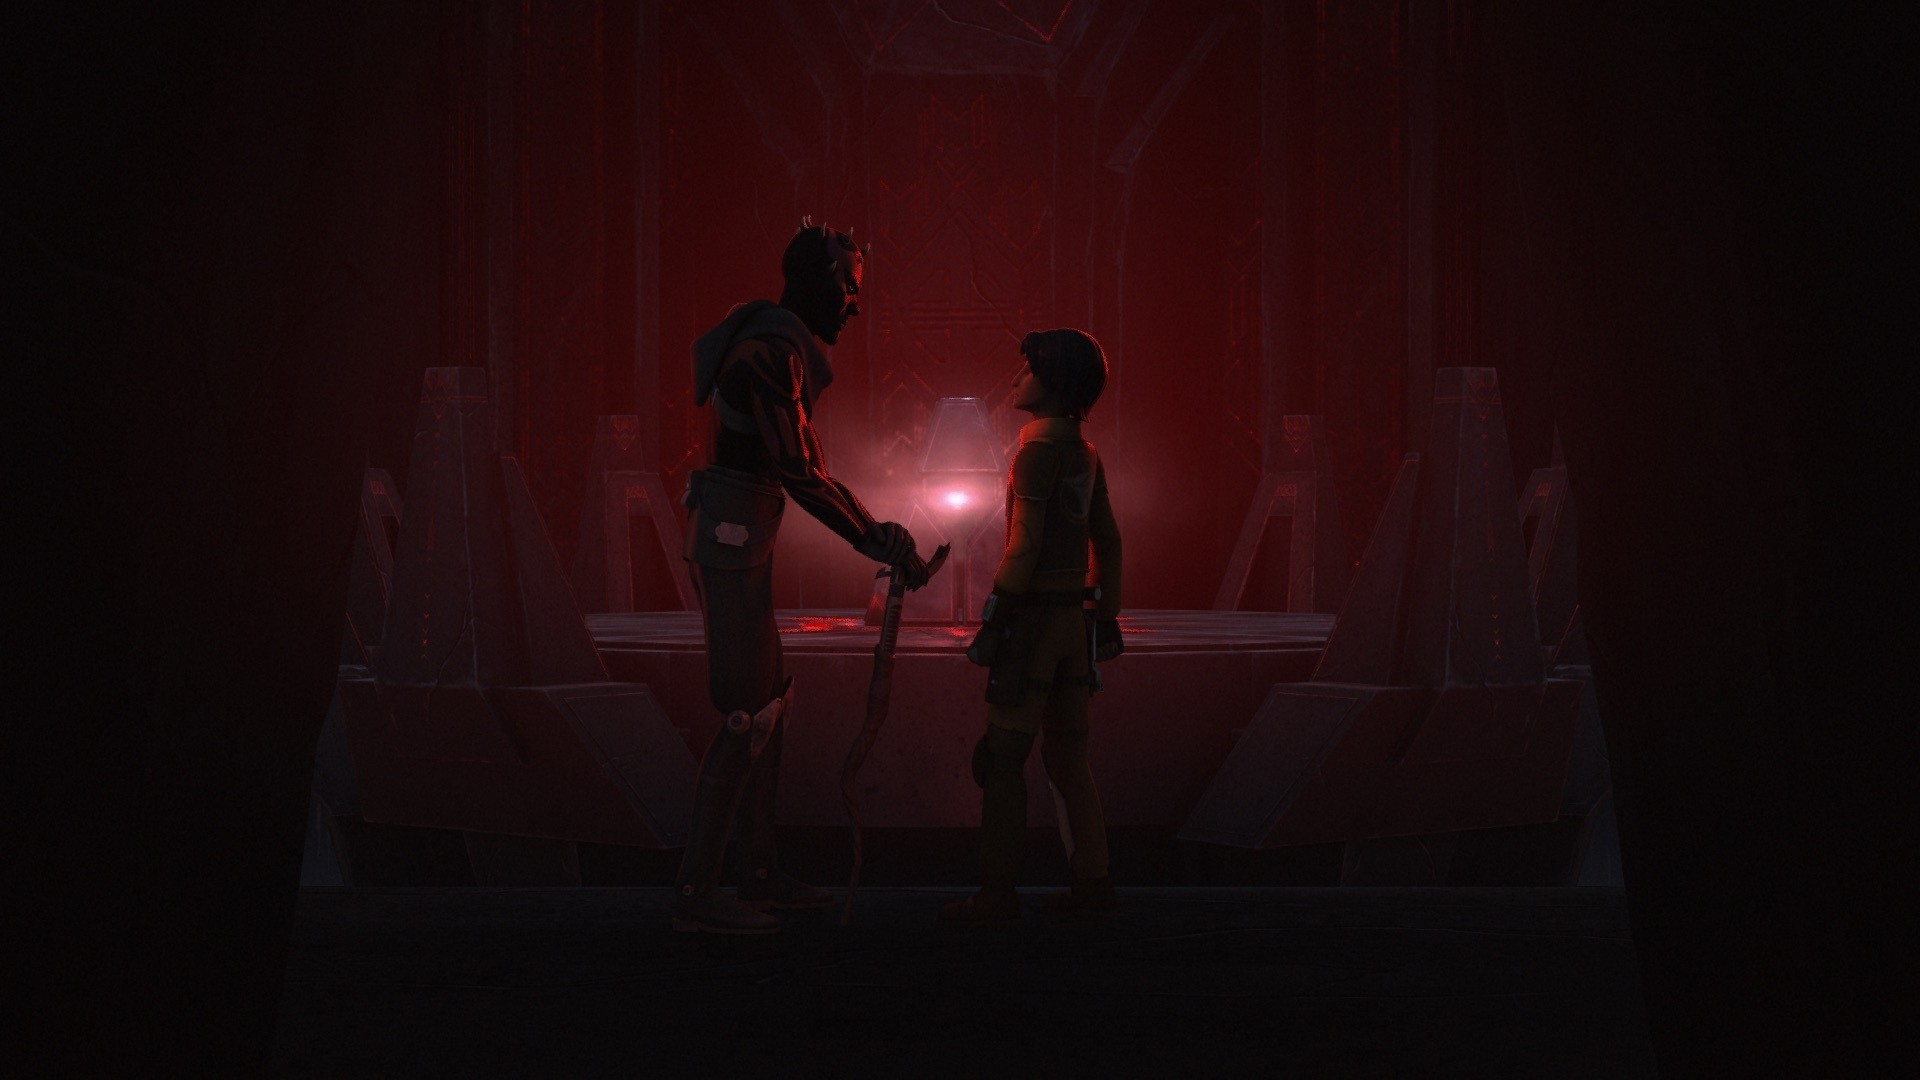 Star Wars Rebels – Maul and Ezra in front of the Sith holocron